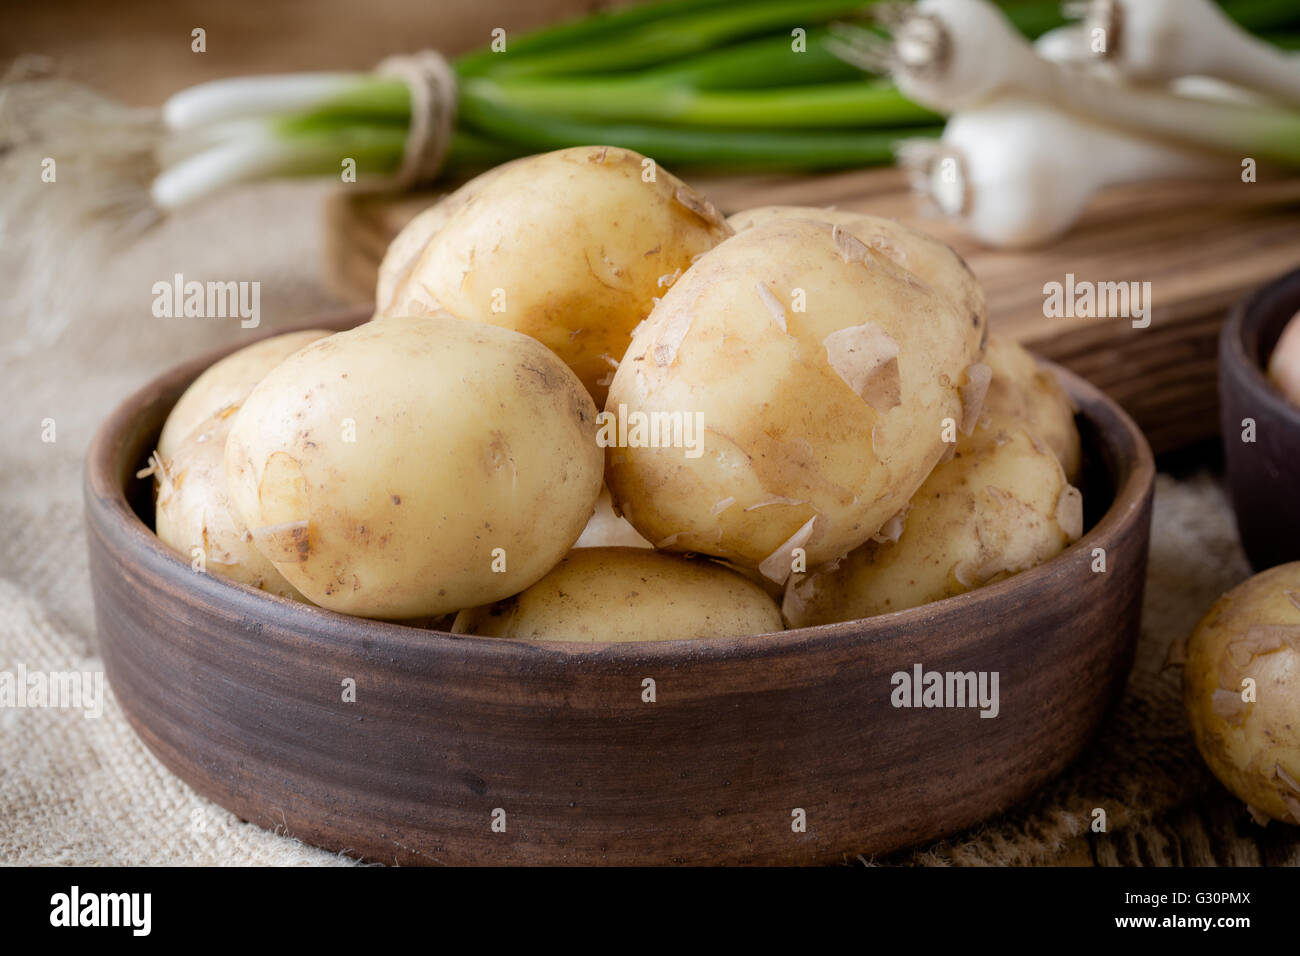 Raw organic potatoes and spring green onion.  Yellow potatoes on rustic wooden table - Stock Image